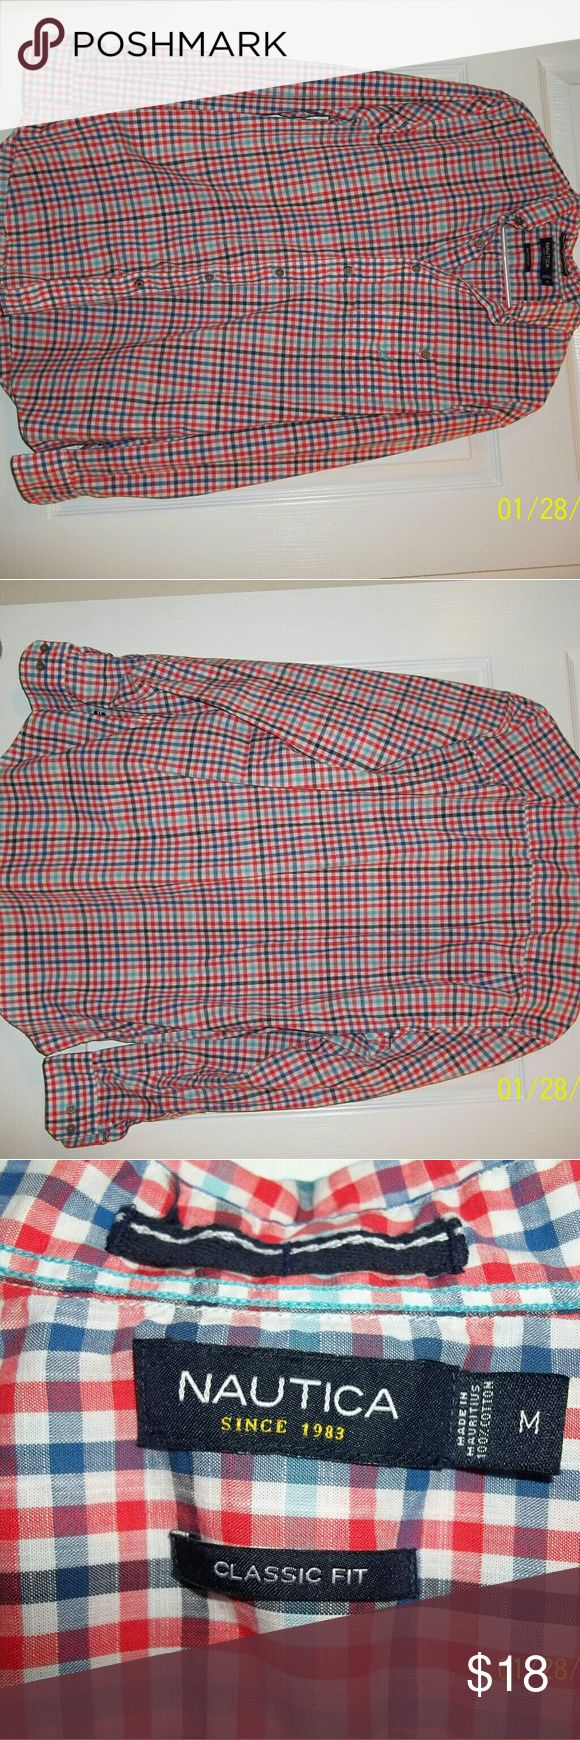 Nautica classic fit long sleeve button down sz M Nautica orange/blue/white checkered long sleeve with single chest pocket. Great condition. Nautica Tops Button Down Shirts